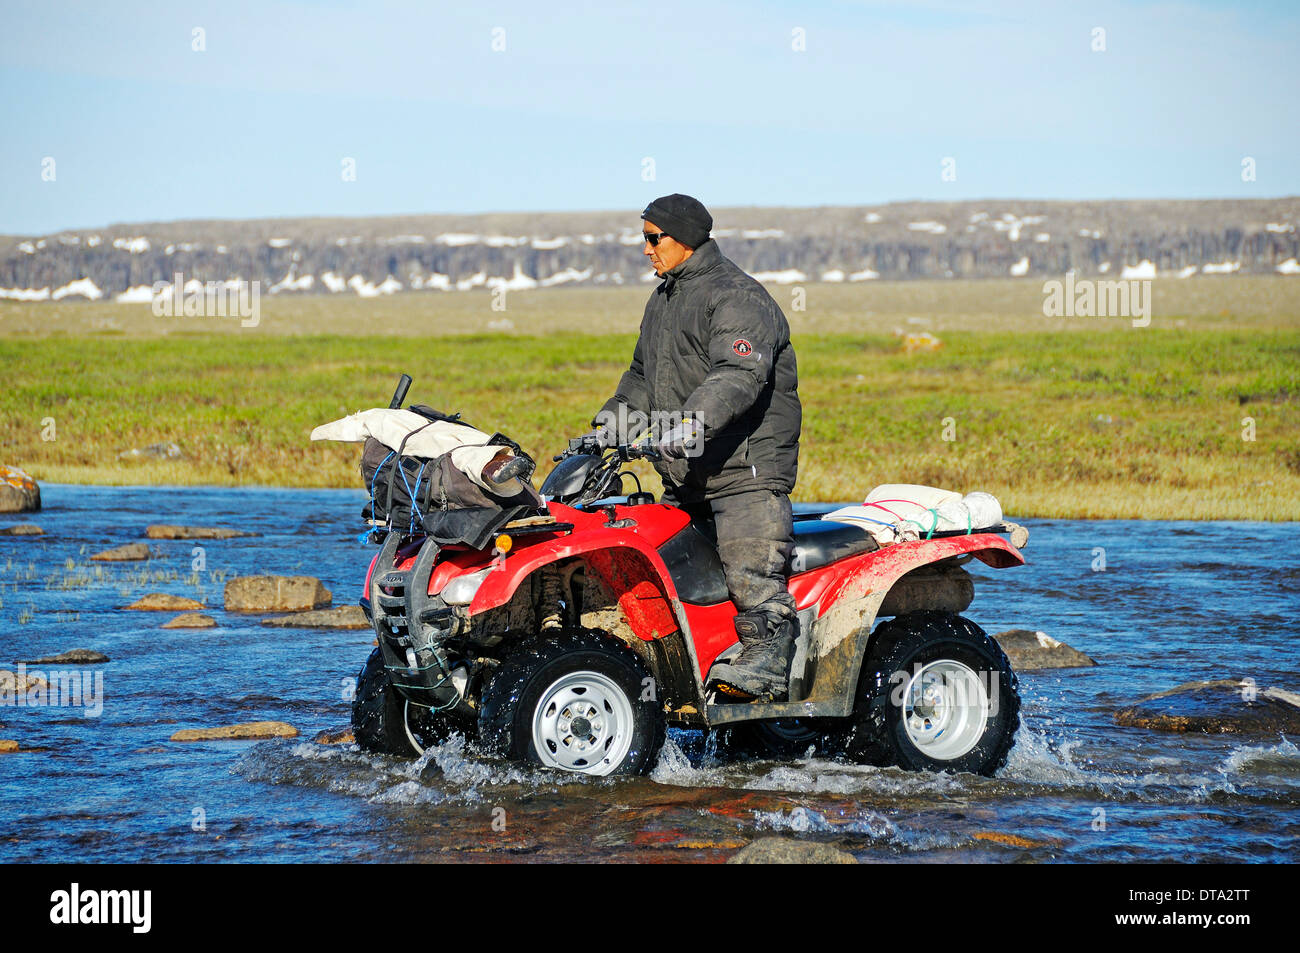 Man of the Inuit people riding a quad bike, ATV, through a river in the tundra on Victoria Island, formerly Holman Island - Stock Image